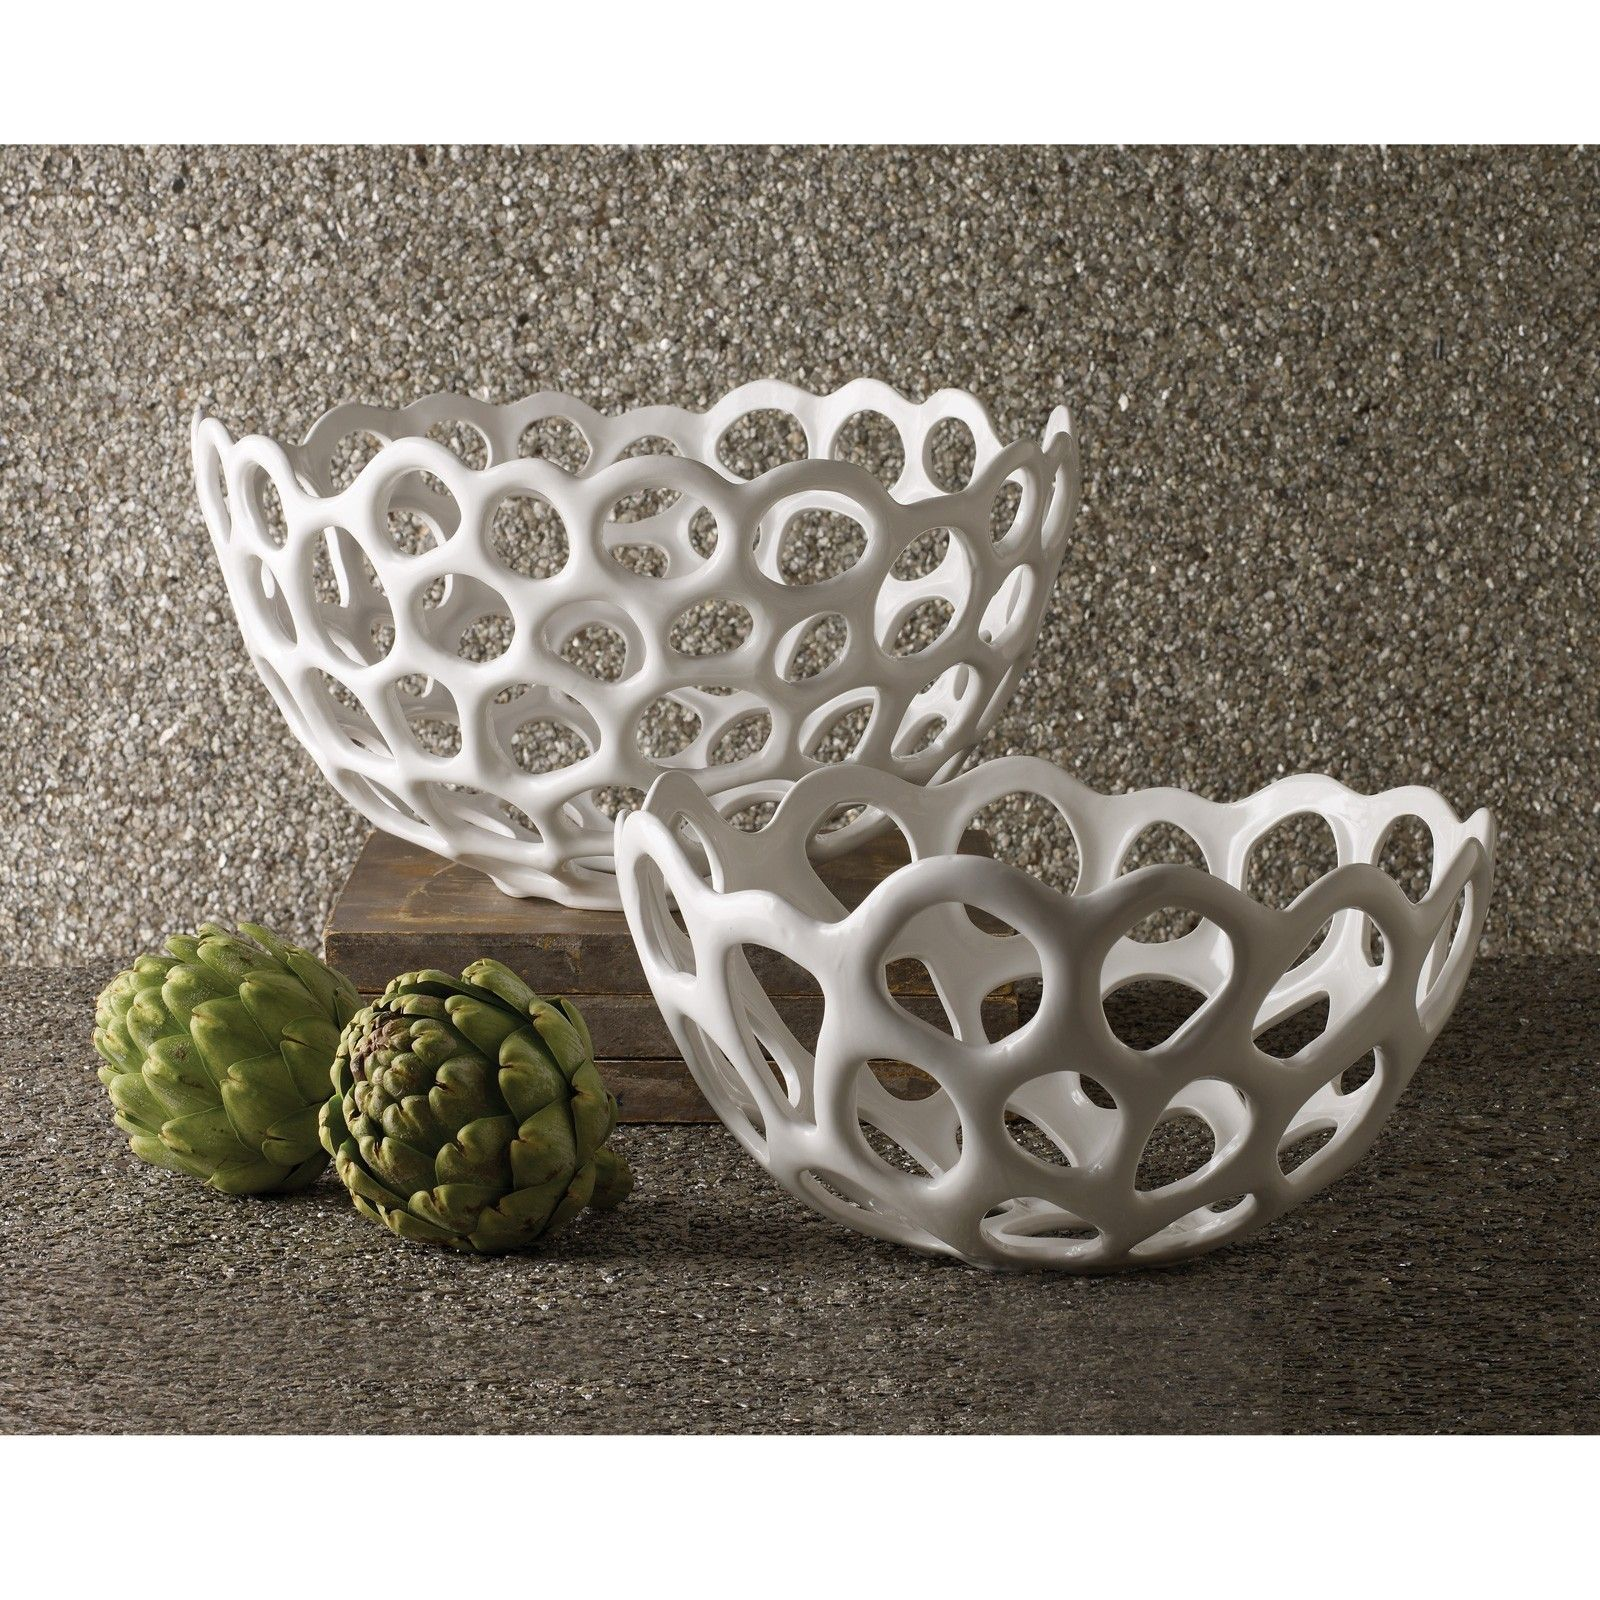 White Organic Design Bowl. Beautiful Fruit Filled Or Empty